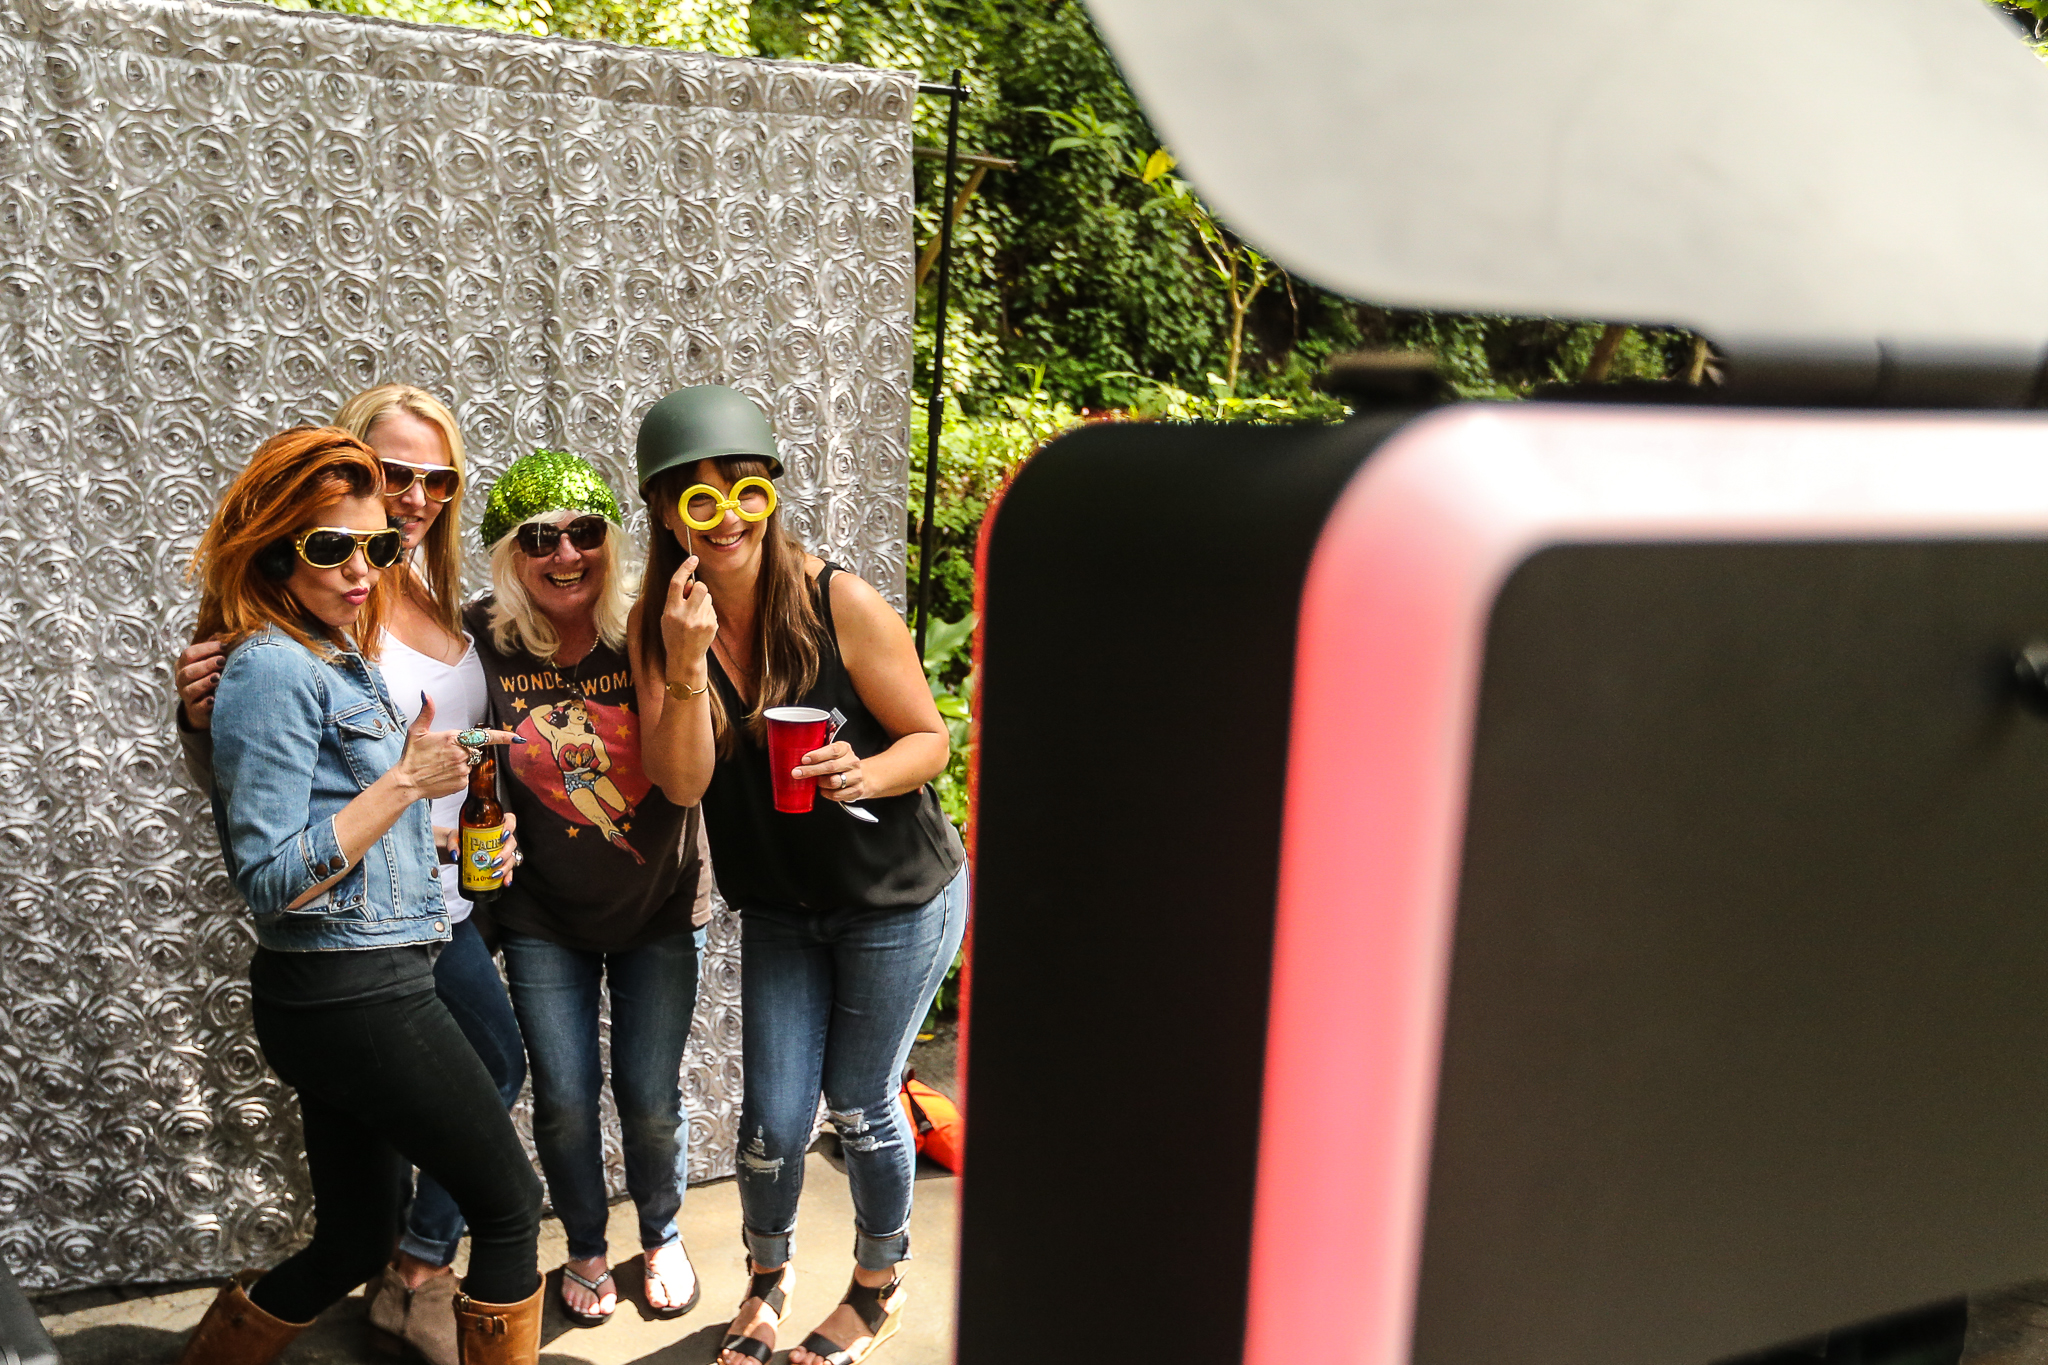 Guests using our Infinite photobooth outside. This is one of the things I love most about open-air photobooths like this. They can be set up in pretty much any location, including outside!